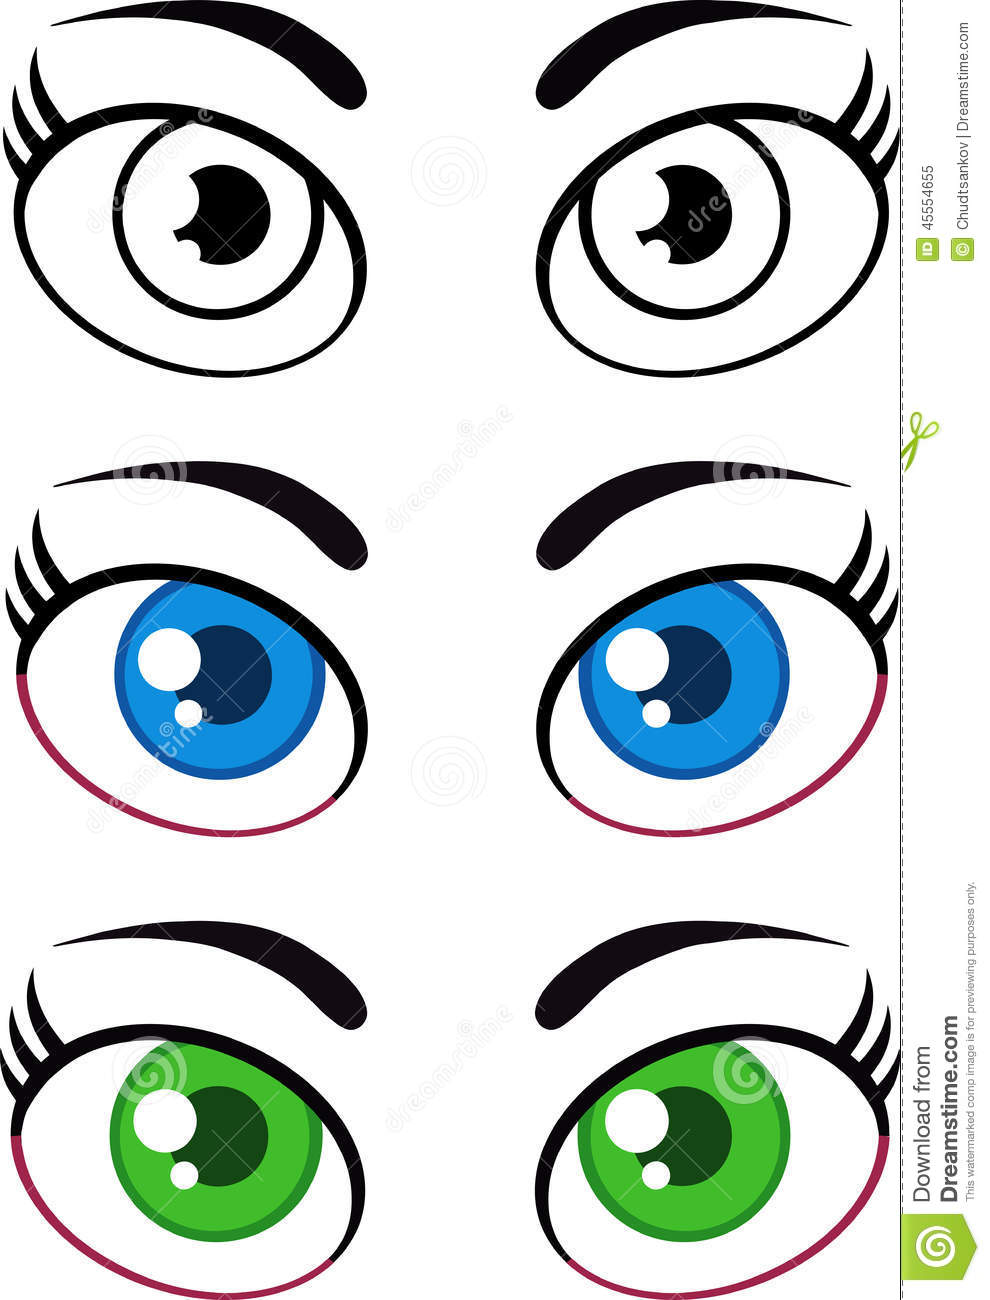 Cartoon Characters Eyes : Women cartoon eyes collection set stock illustration